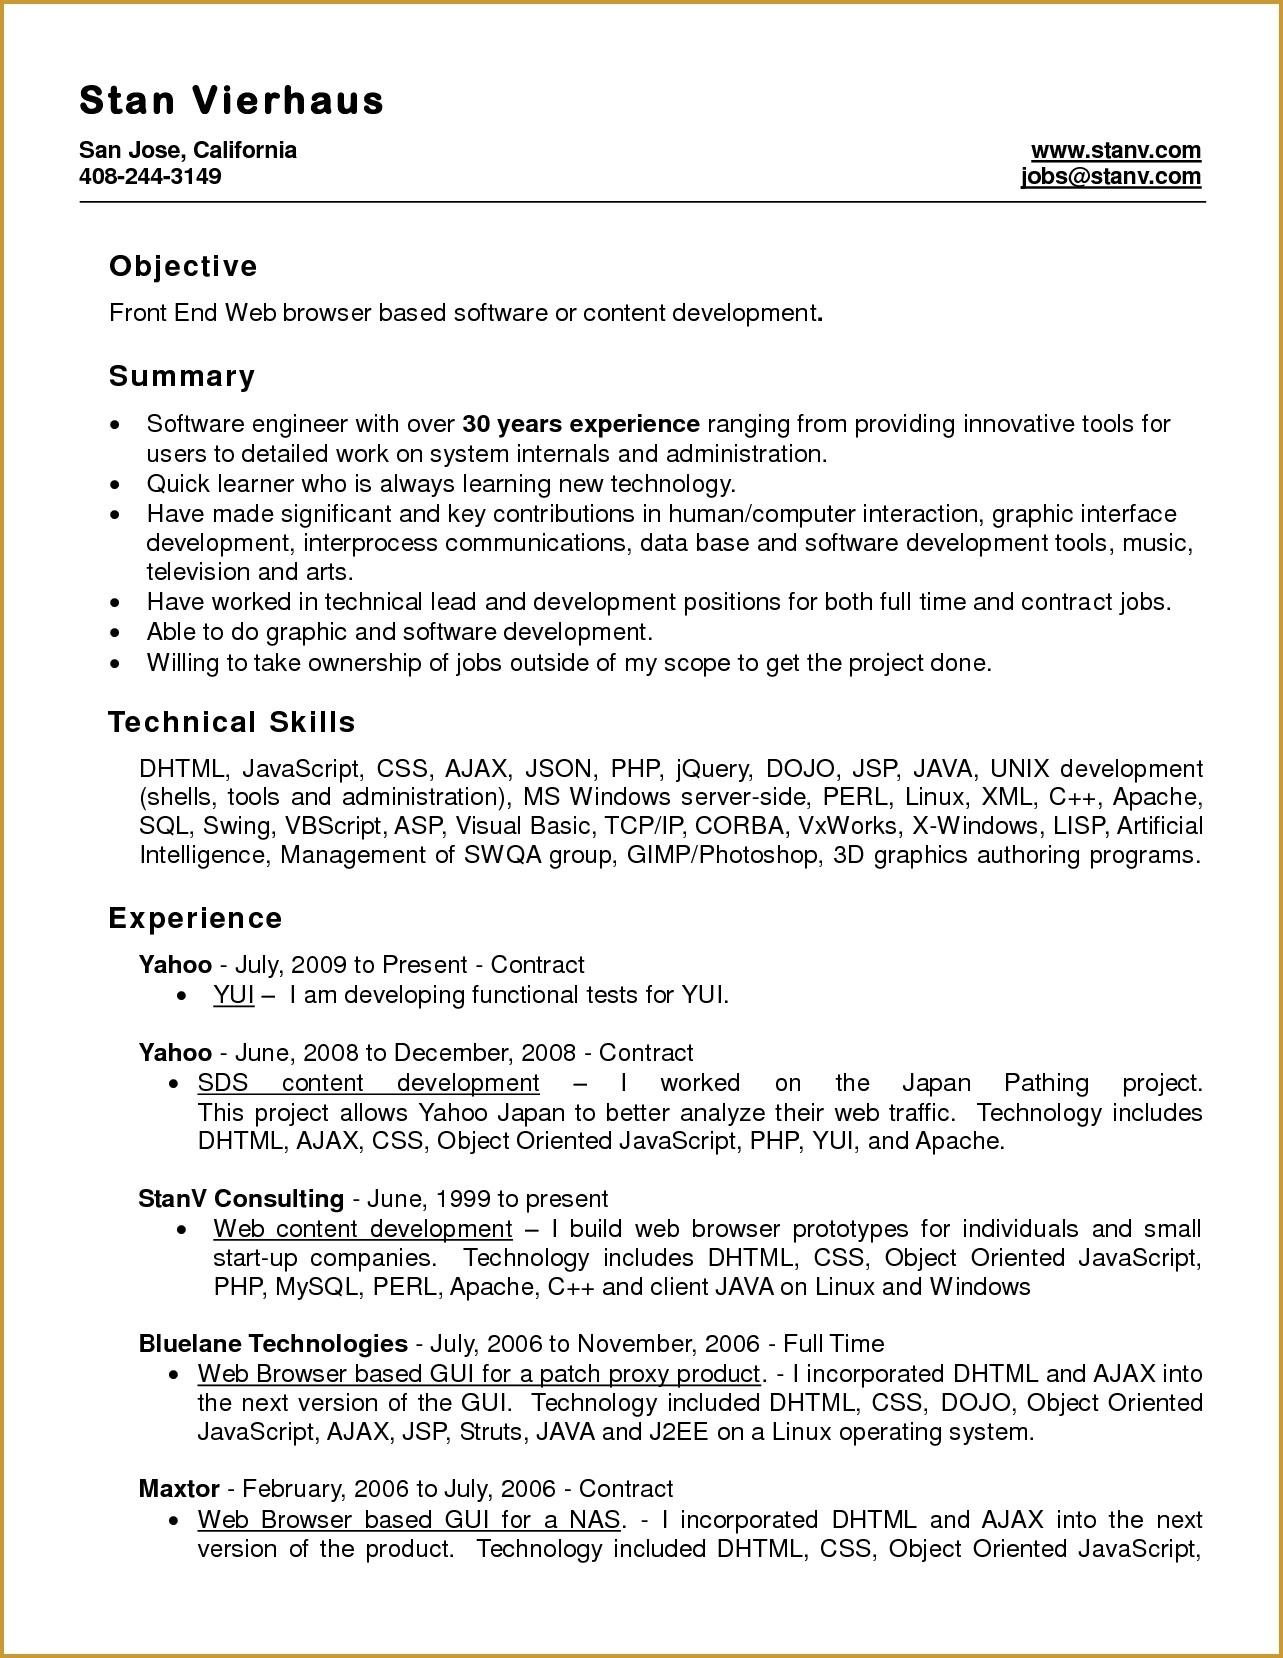 Best Microsoft Word Template For Resume